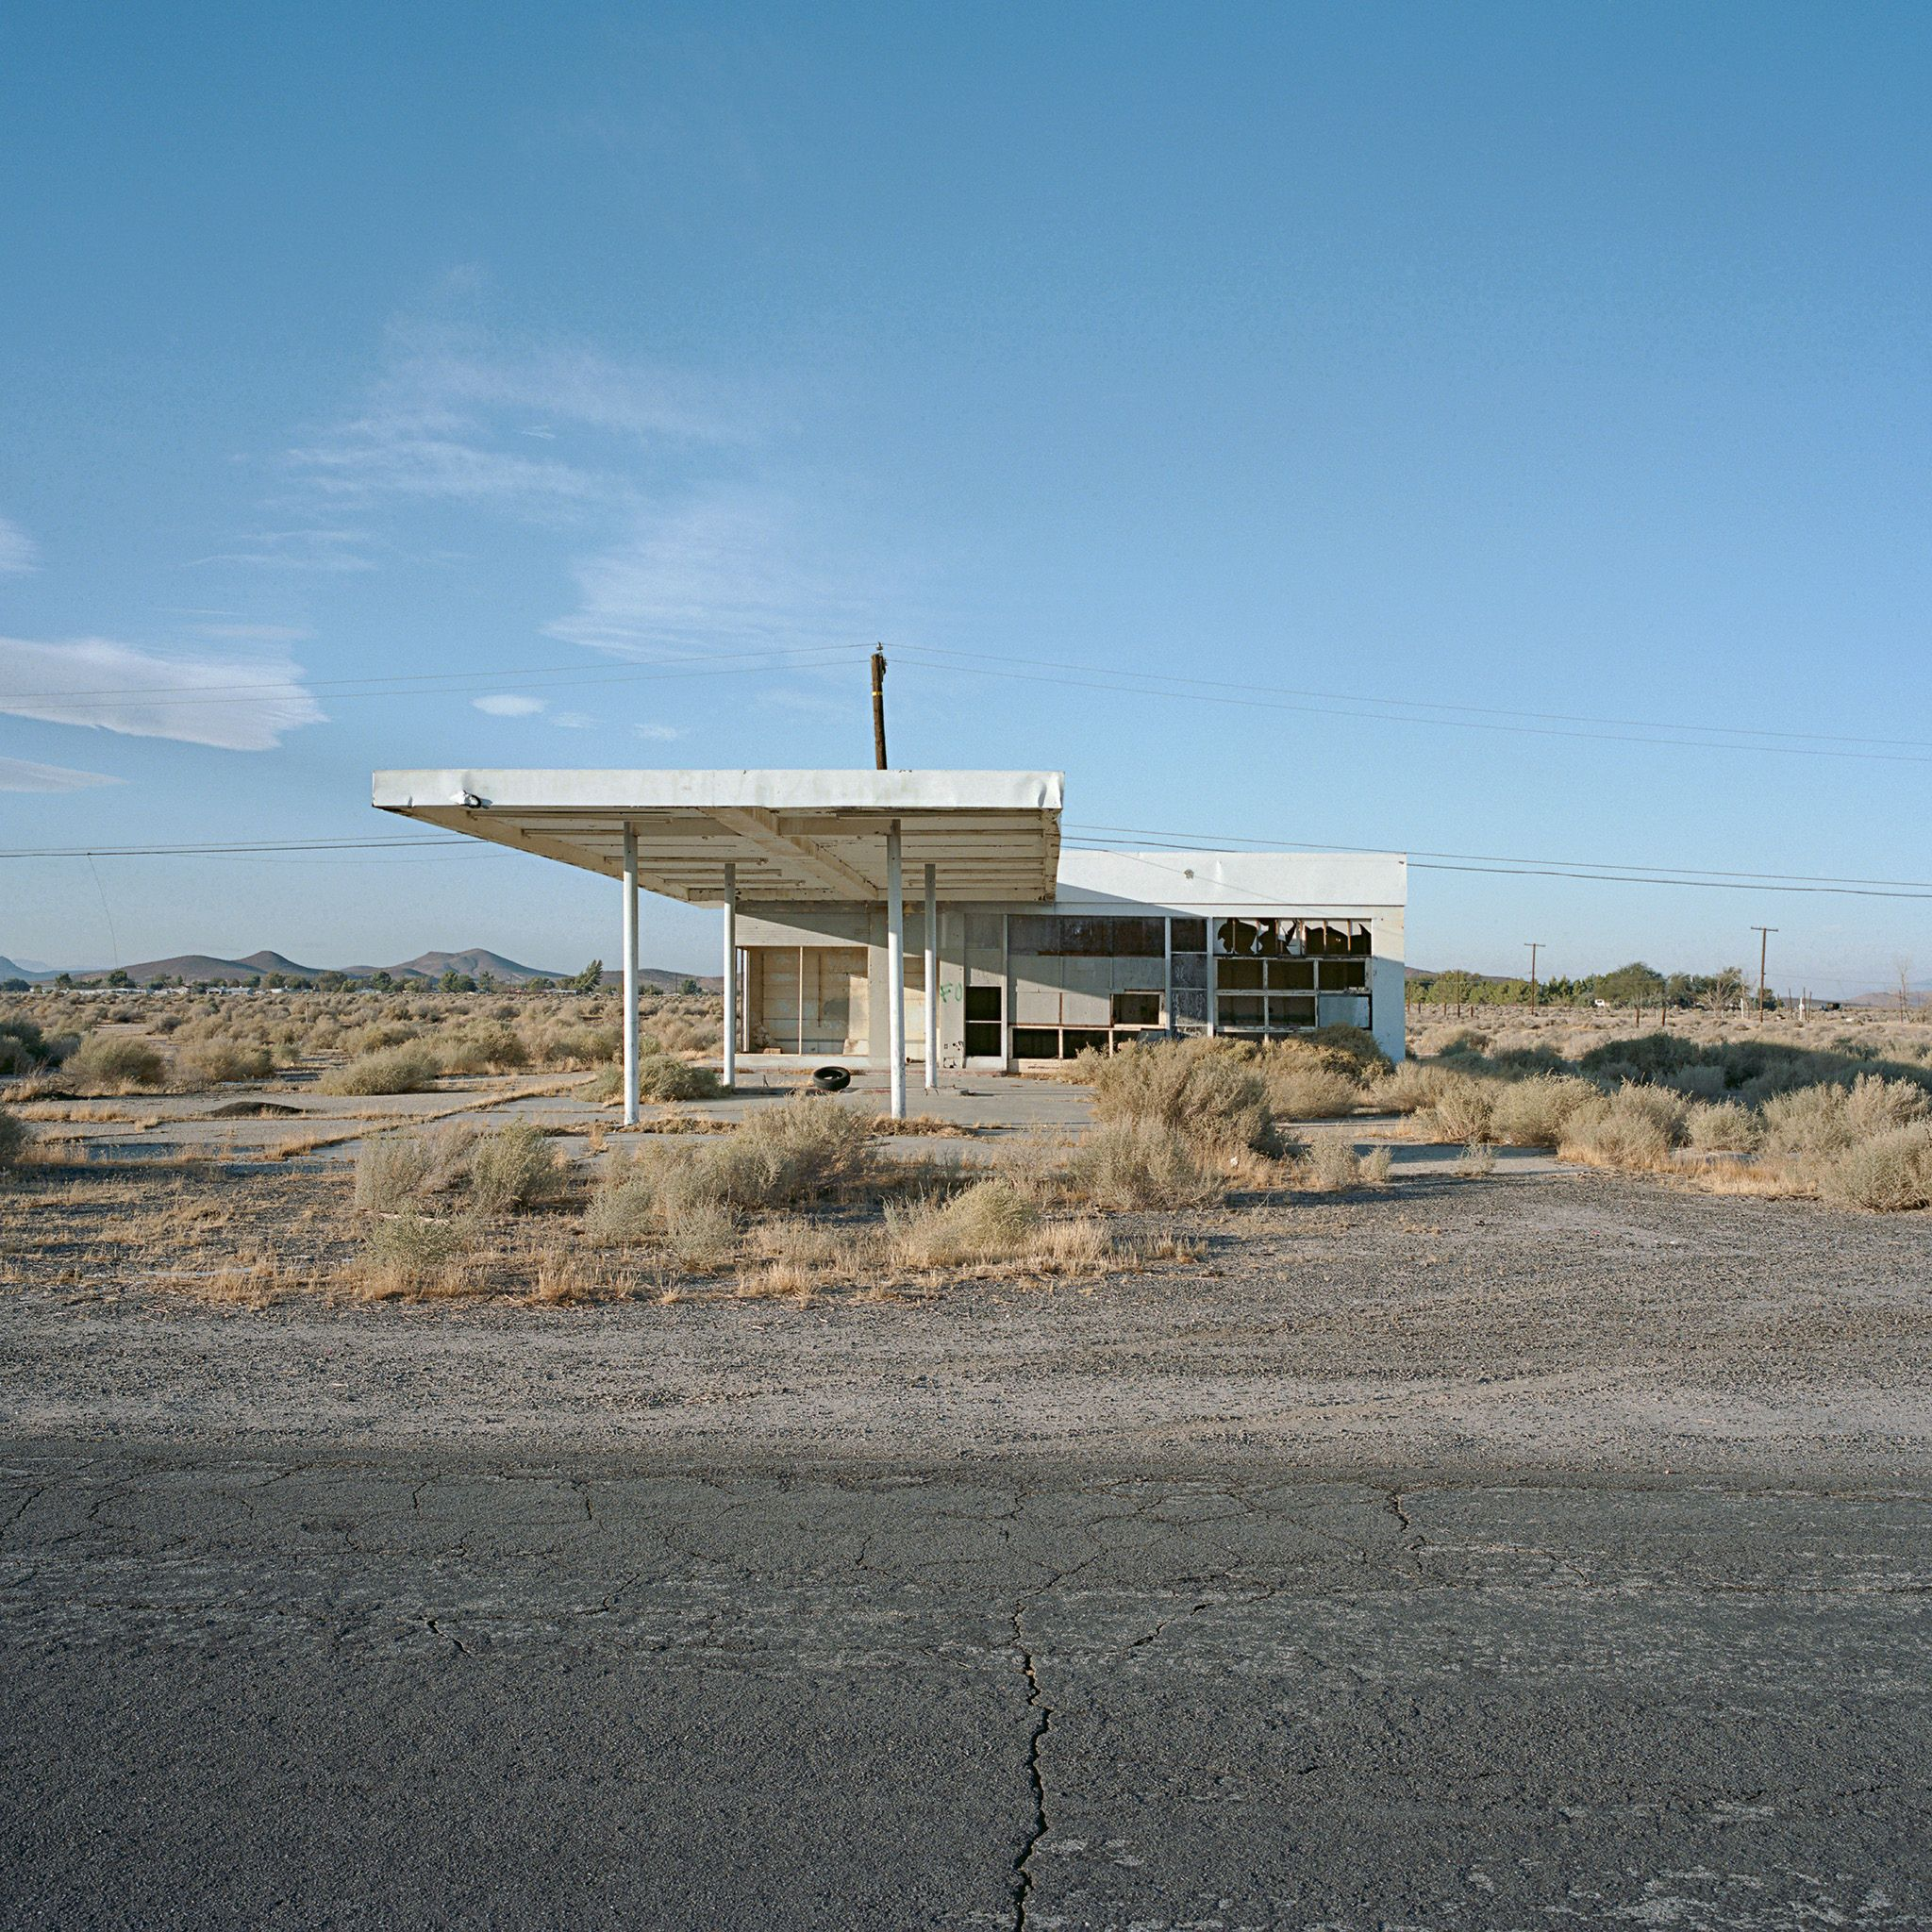 self serve supreme. north edwards, ca. 2011. Abandoned